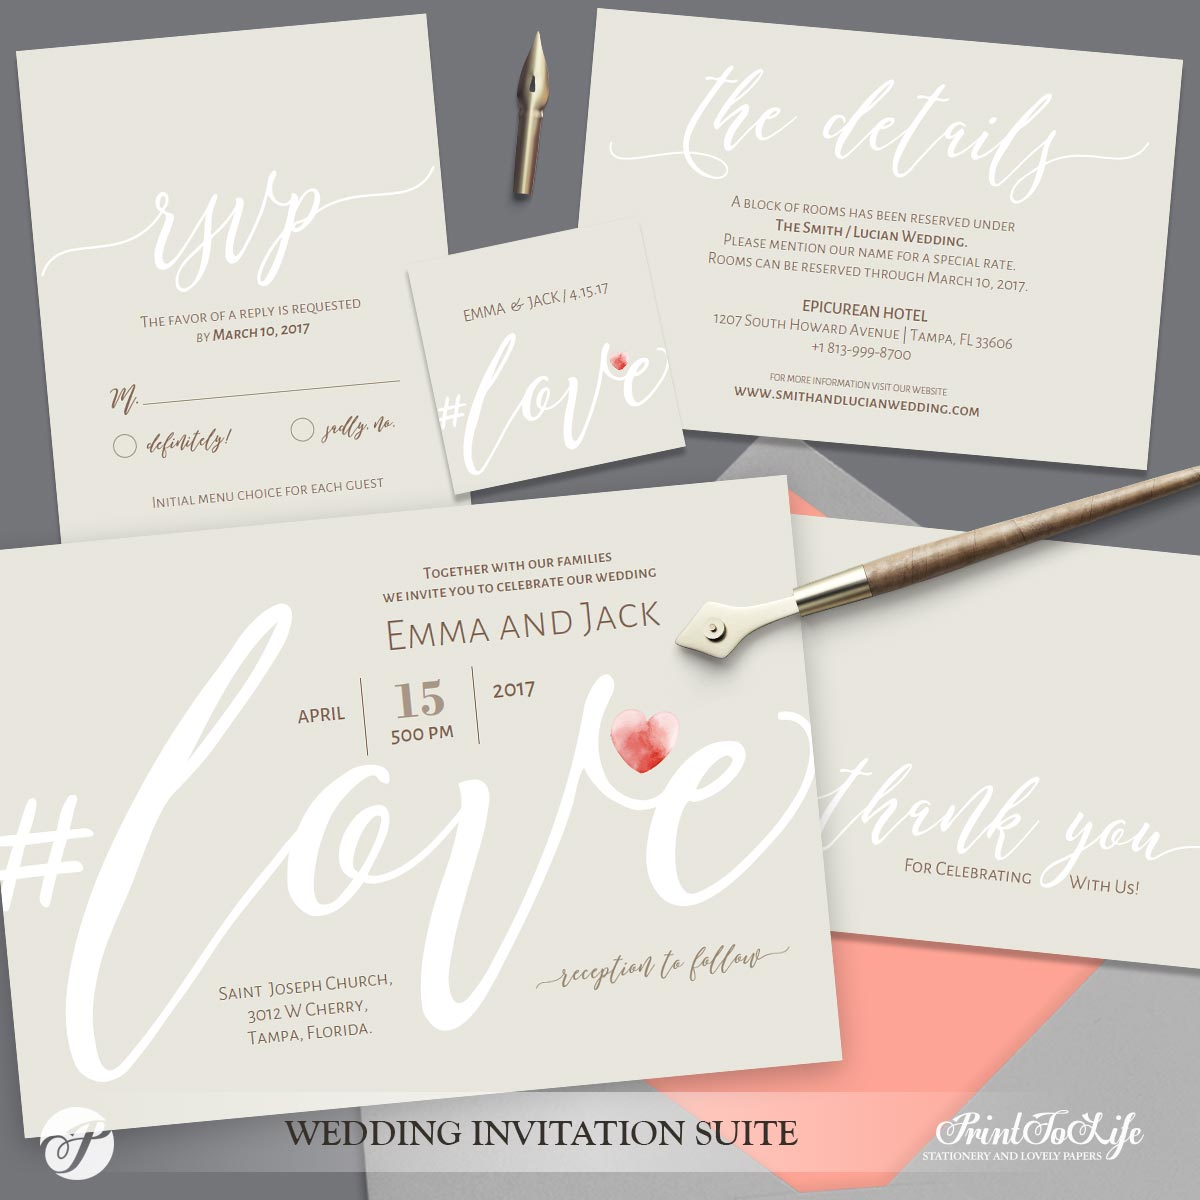 Love Wedding Invitation Neutral Beige by Printolife